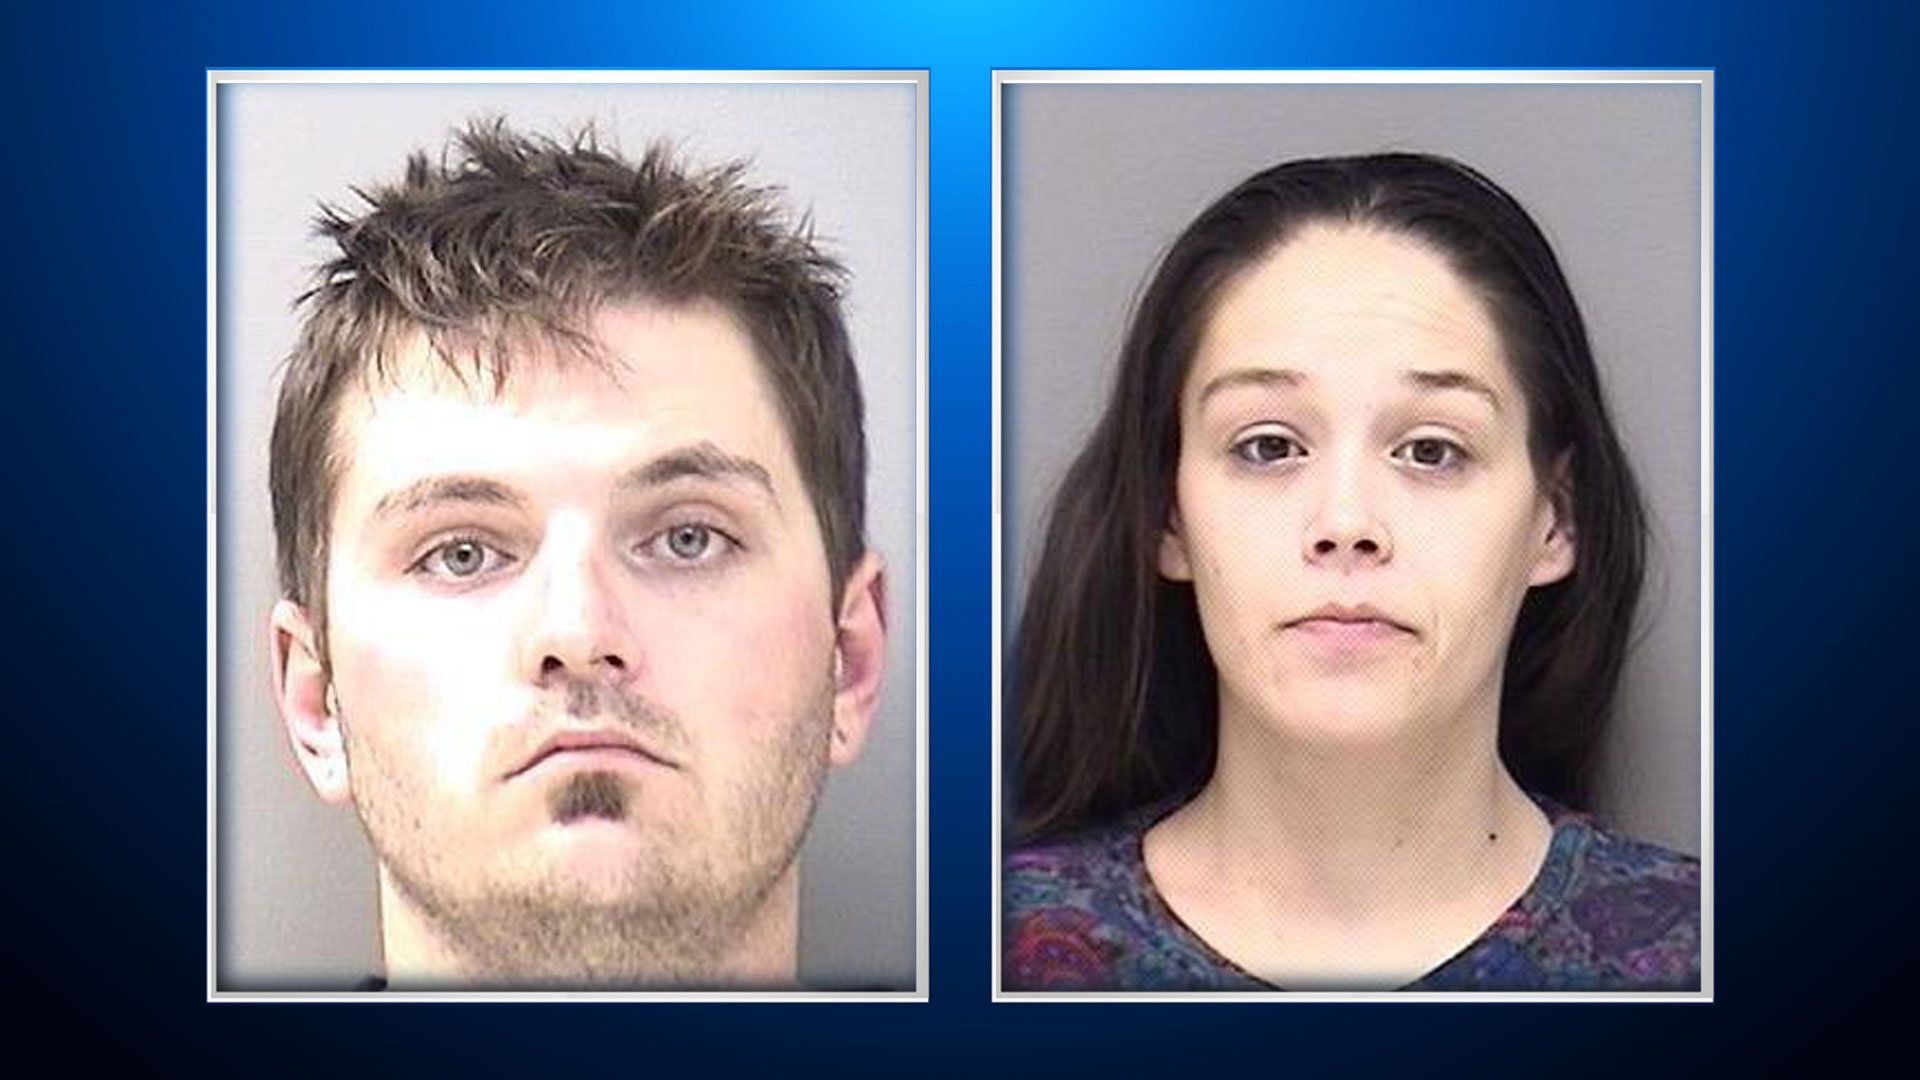 Joshua Medley and Diedre Crawford (credit: Fort Collins Police Services)